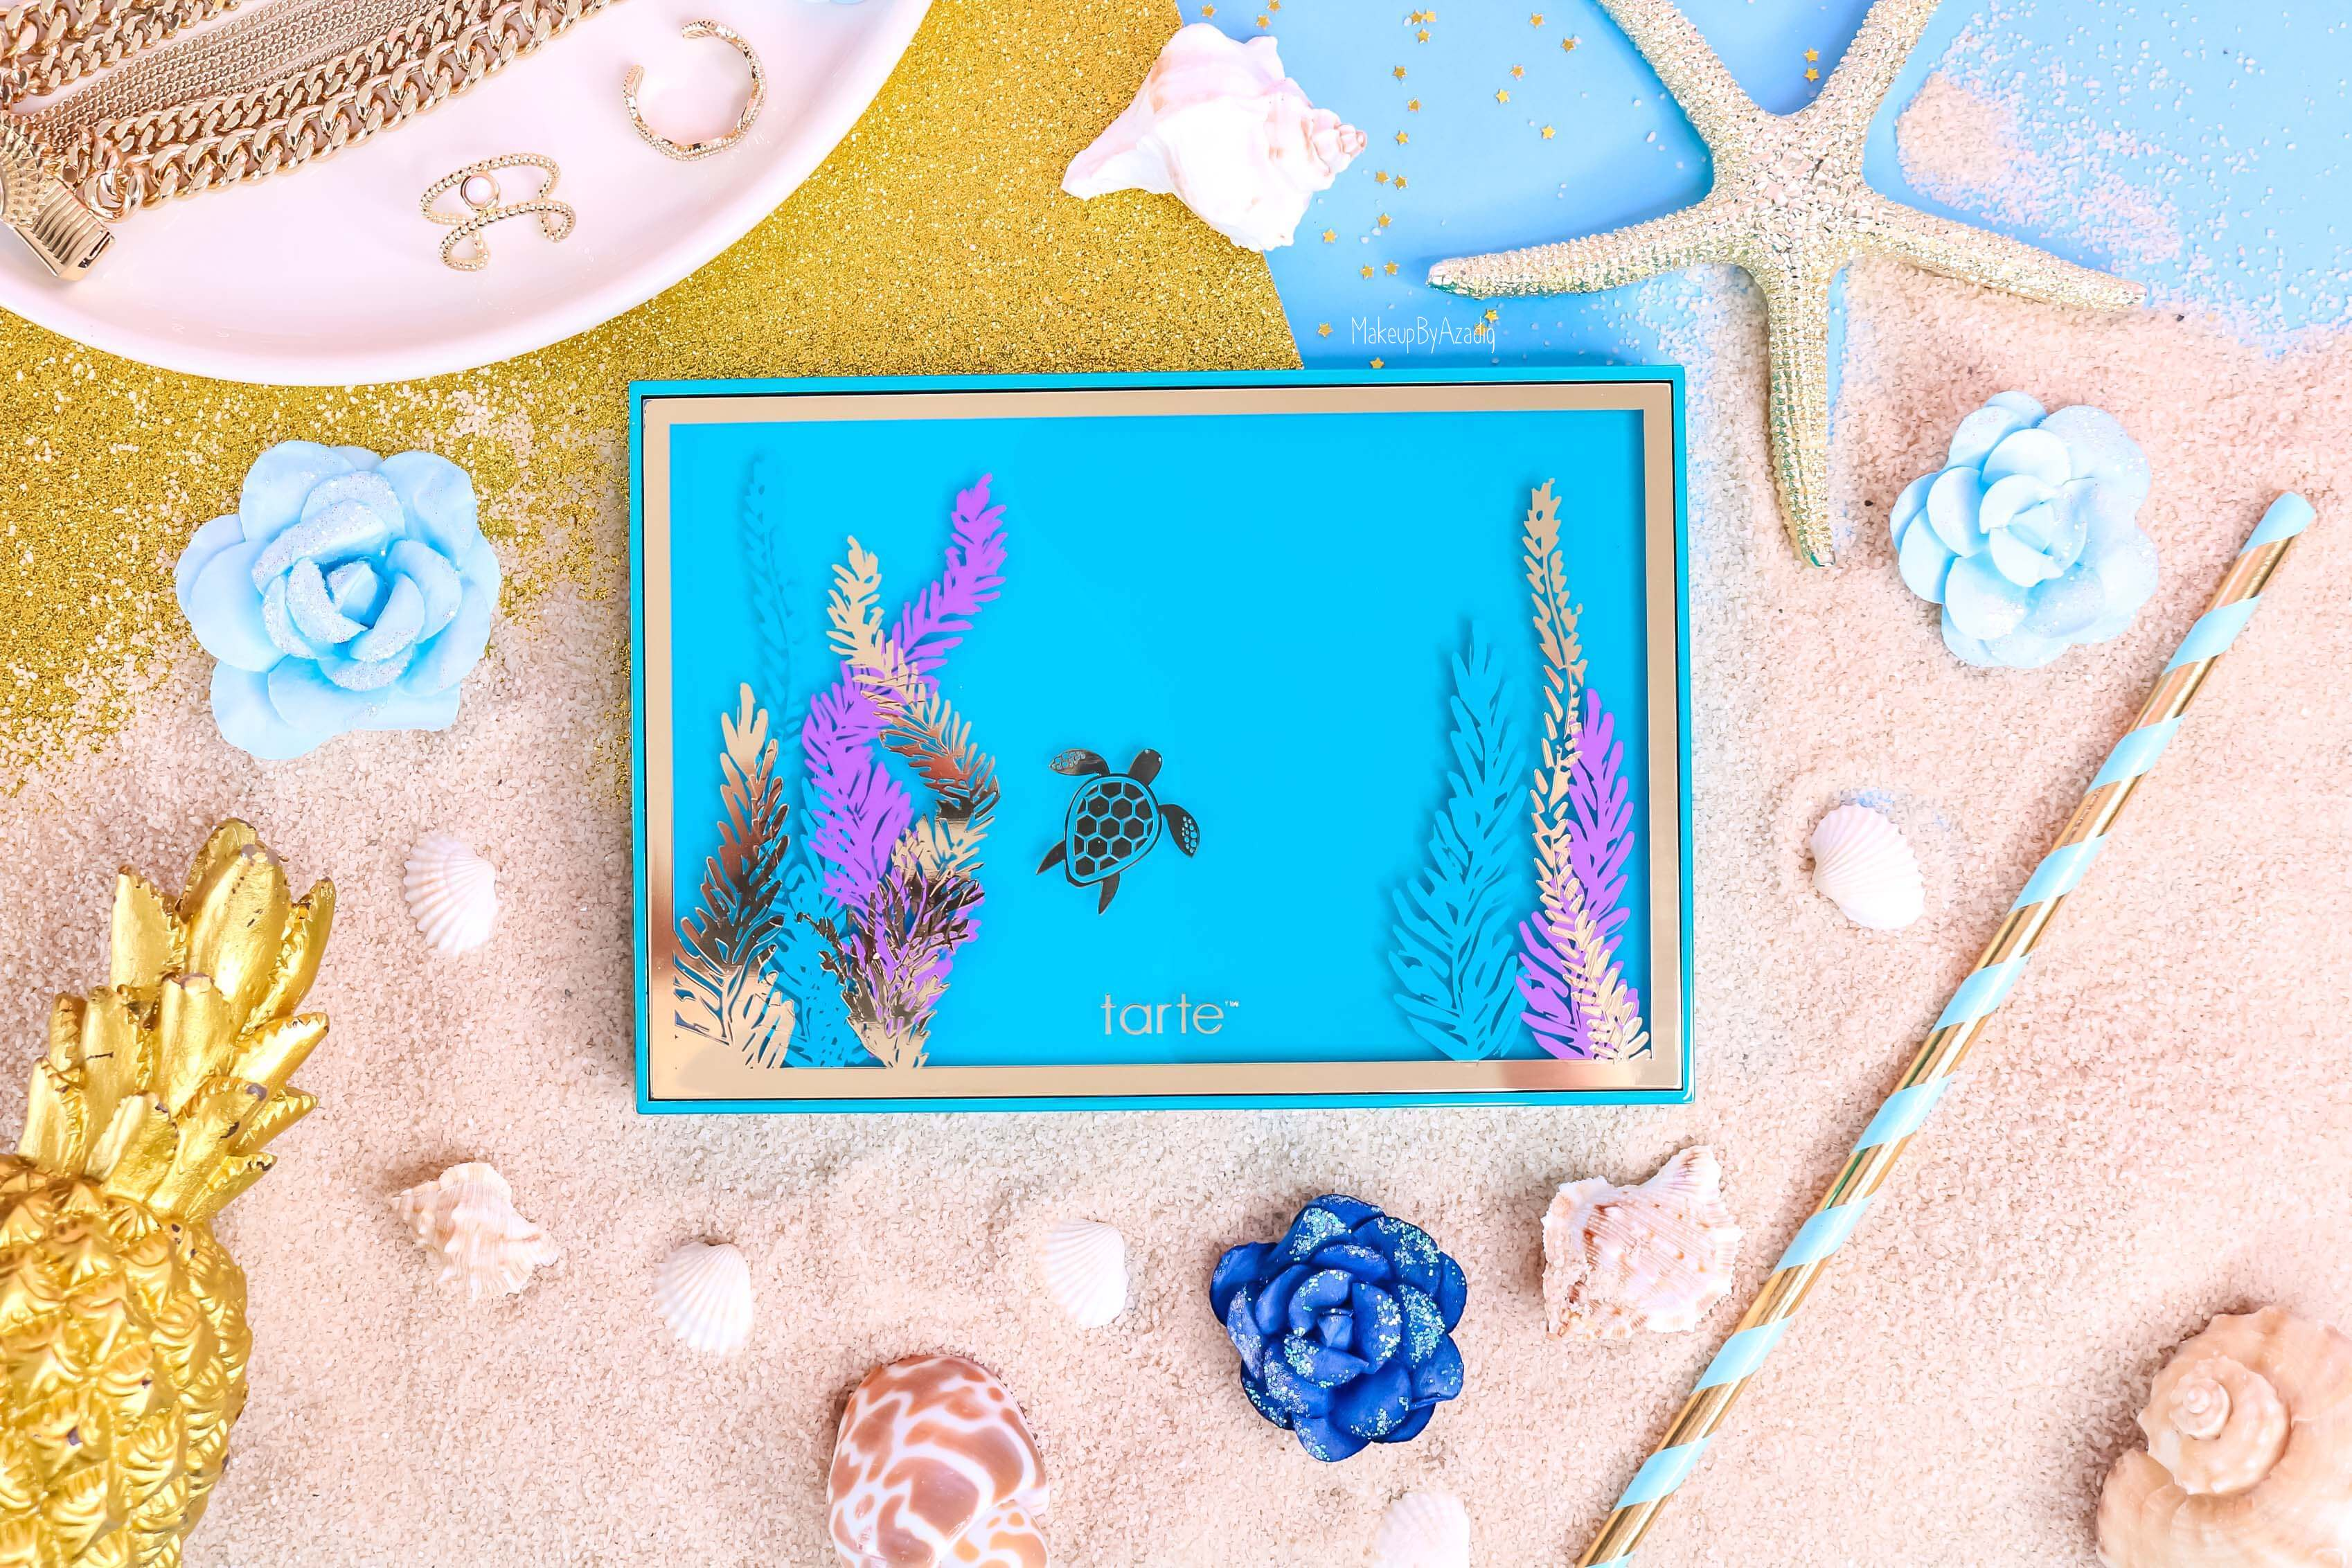 revue-palette-tarte-cosmetics-france-sephora-makeupbyazadig-swatch-prix-avis-rainforest-of-the-sea-packaging